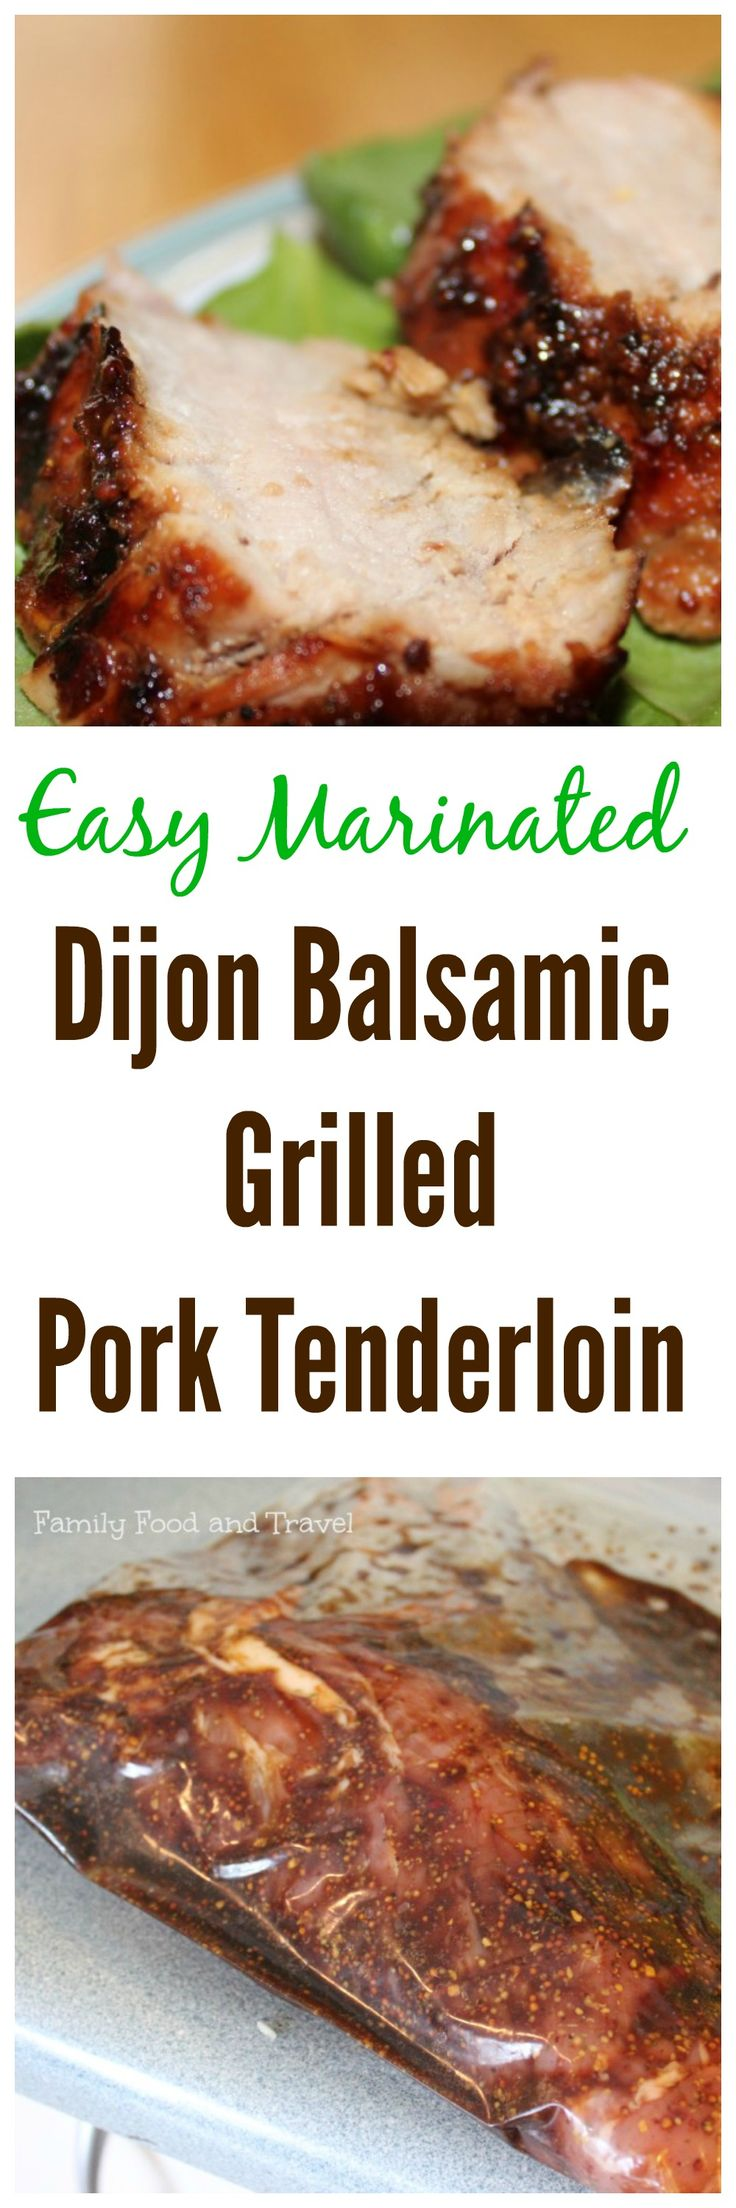 how to cook pork tenderloin on the grill